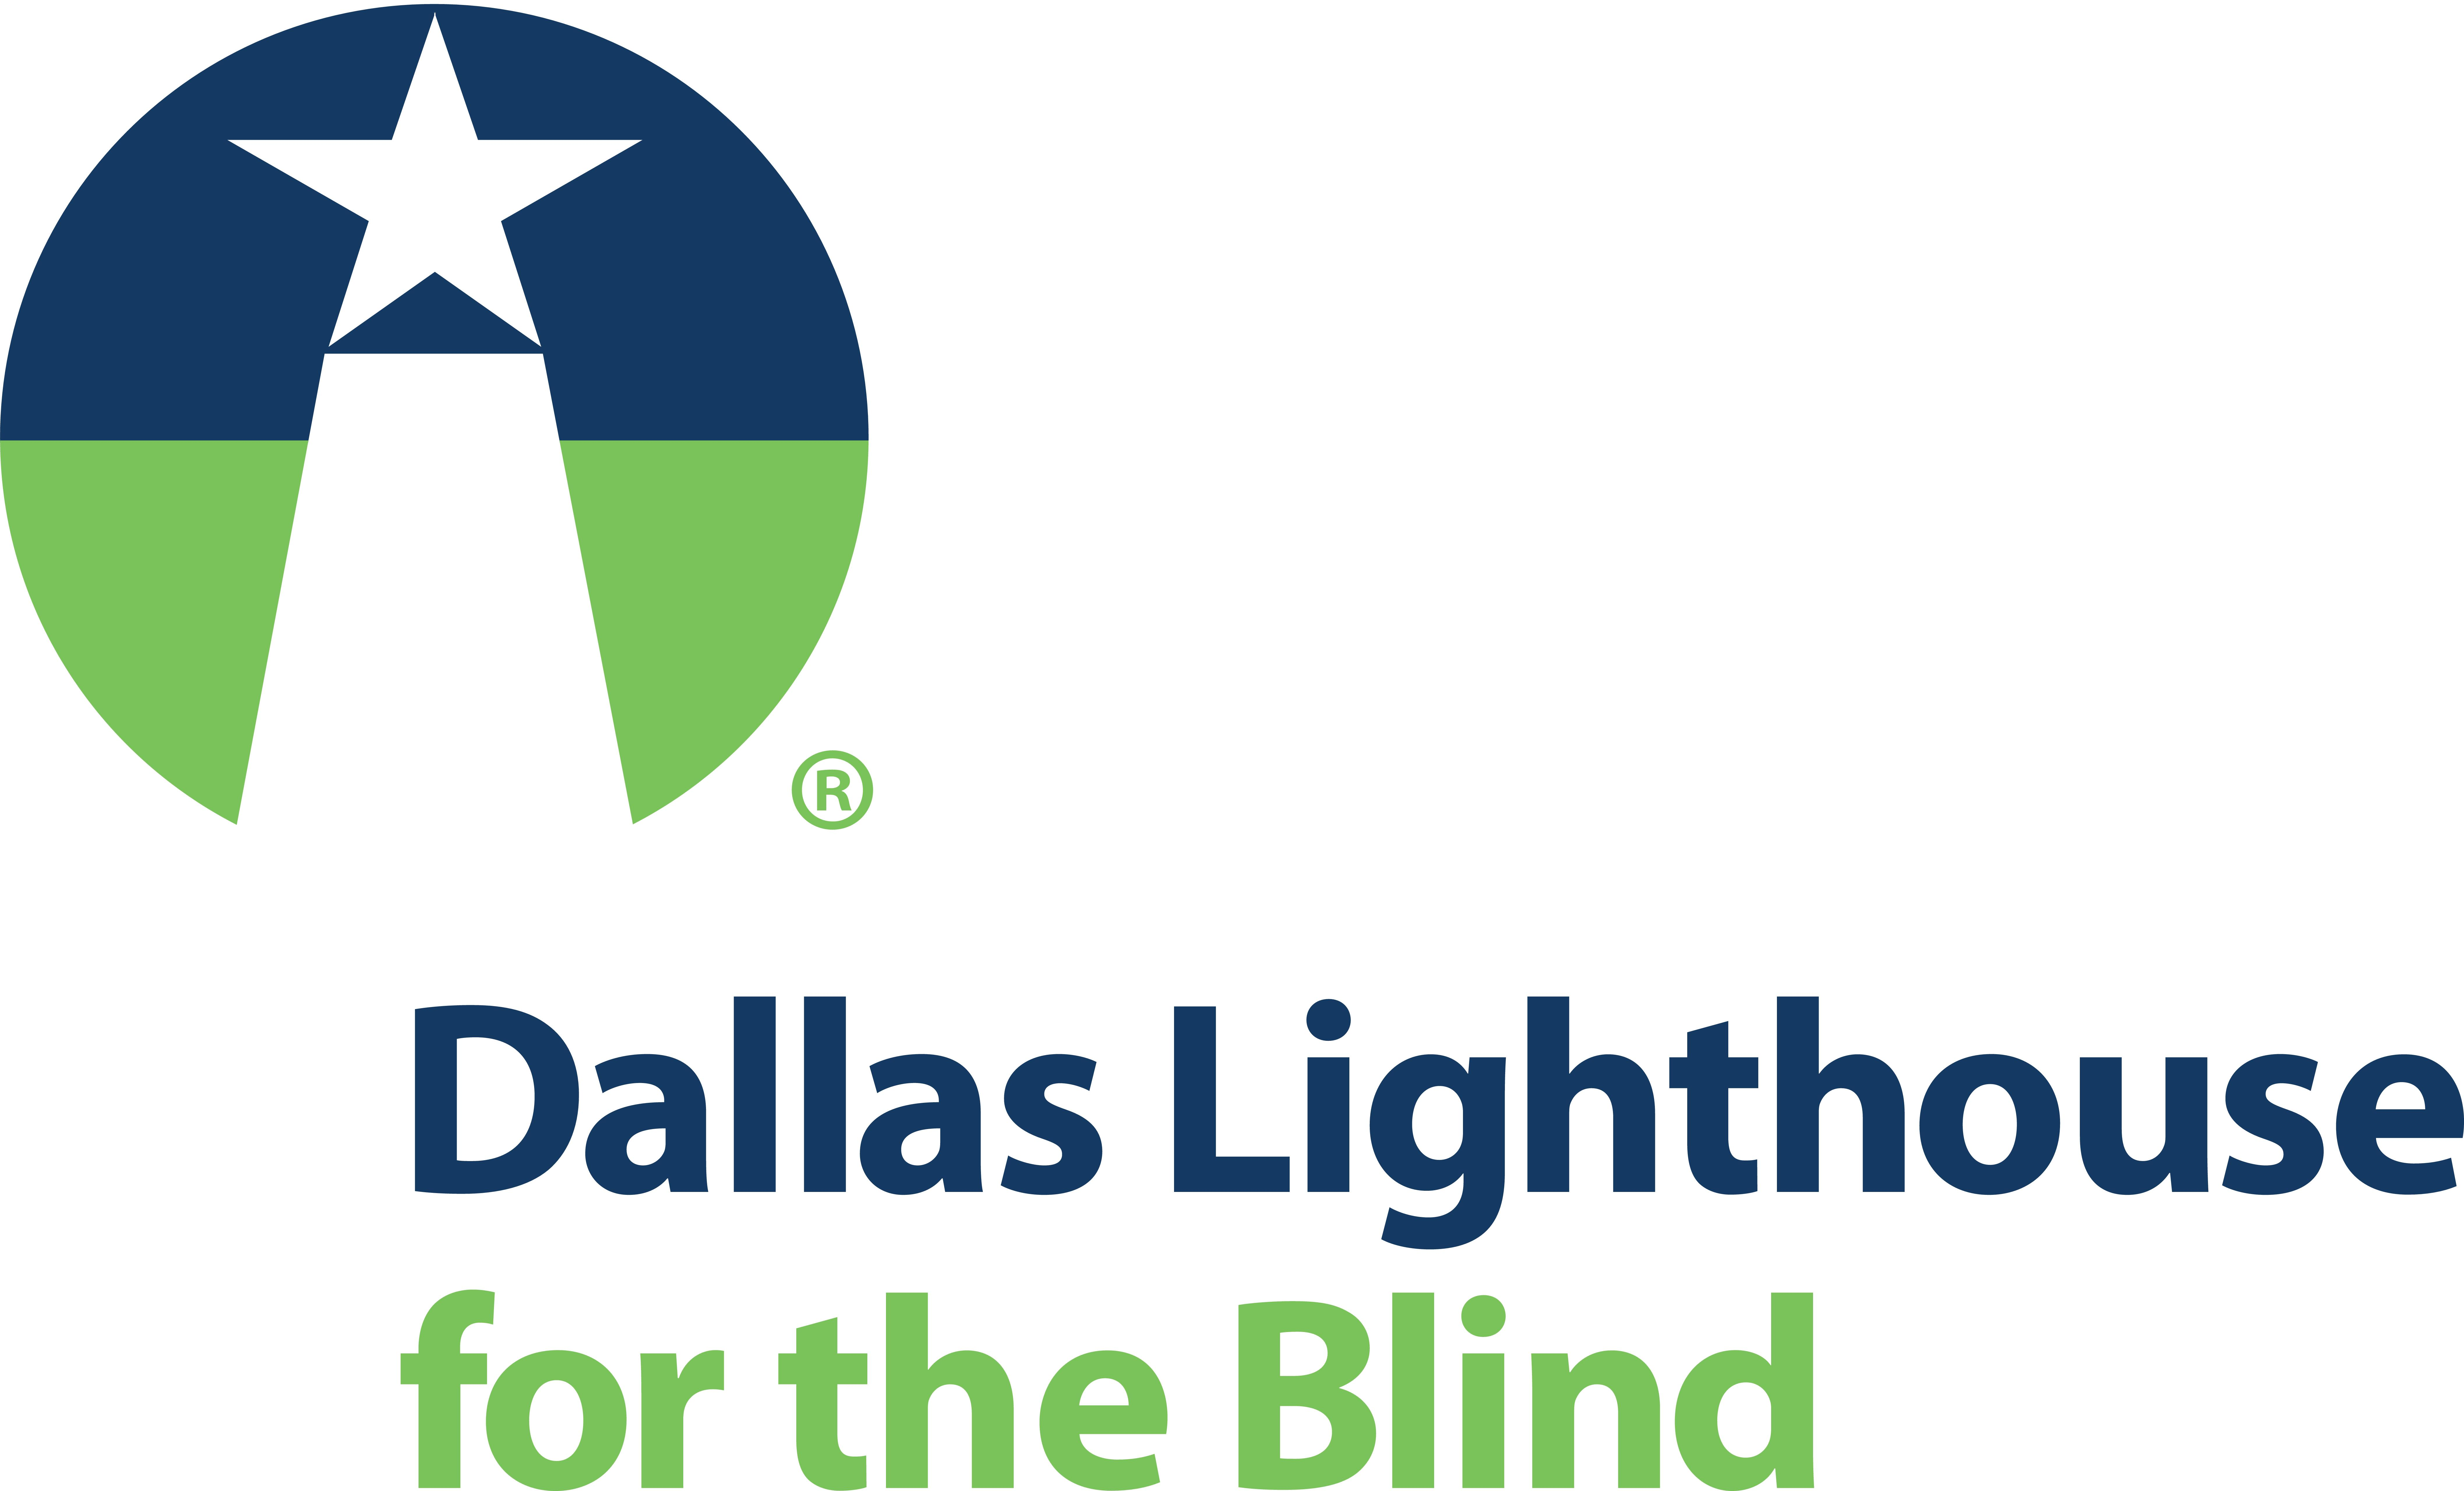 details news for airlift blinds f download lighthouse aw the tour article display photo products hosts blind wing